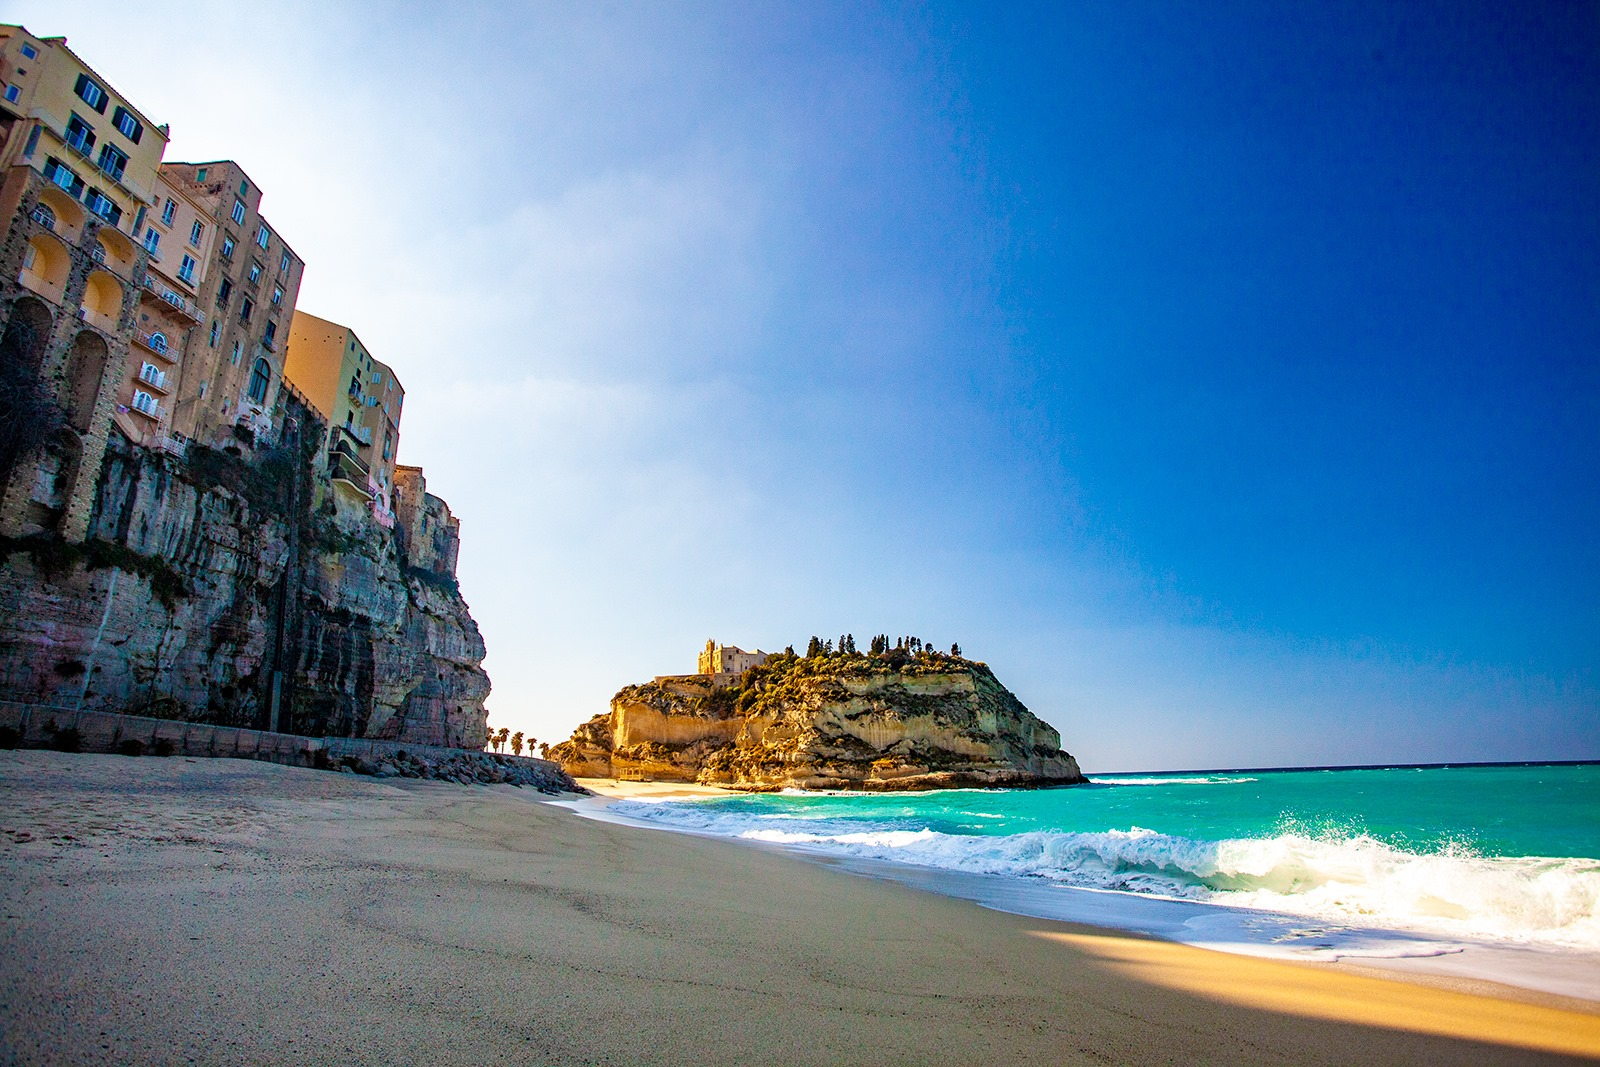 Tropea and San Nicola Arcella